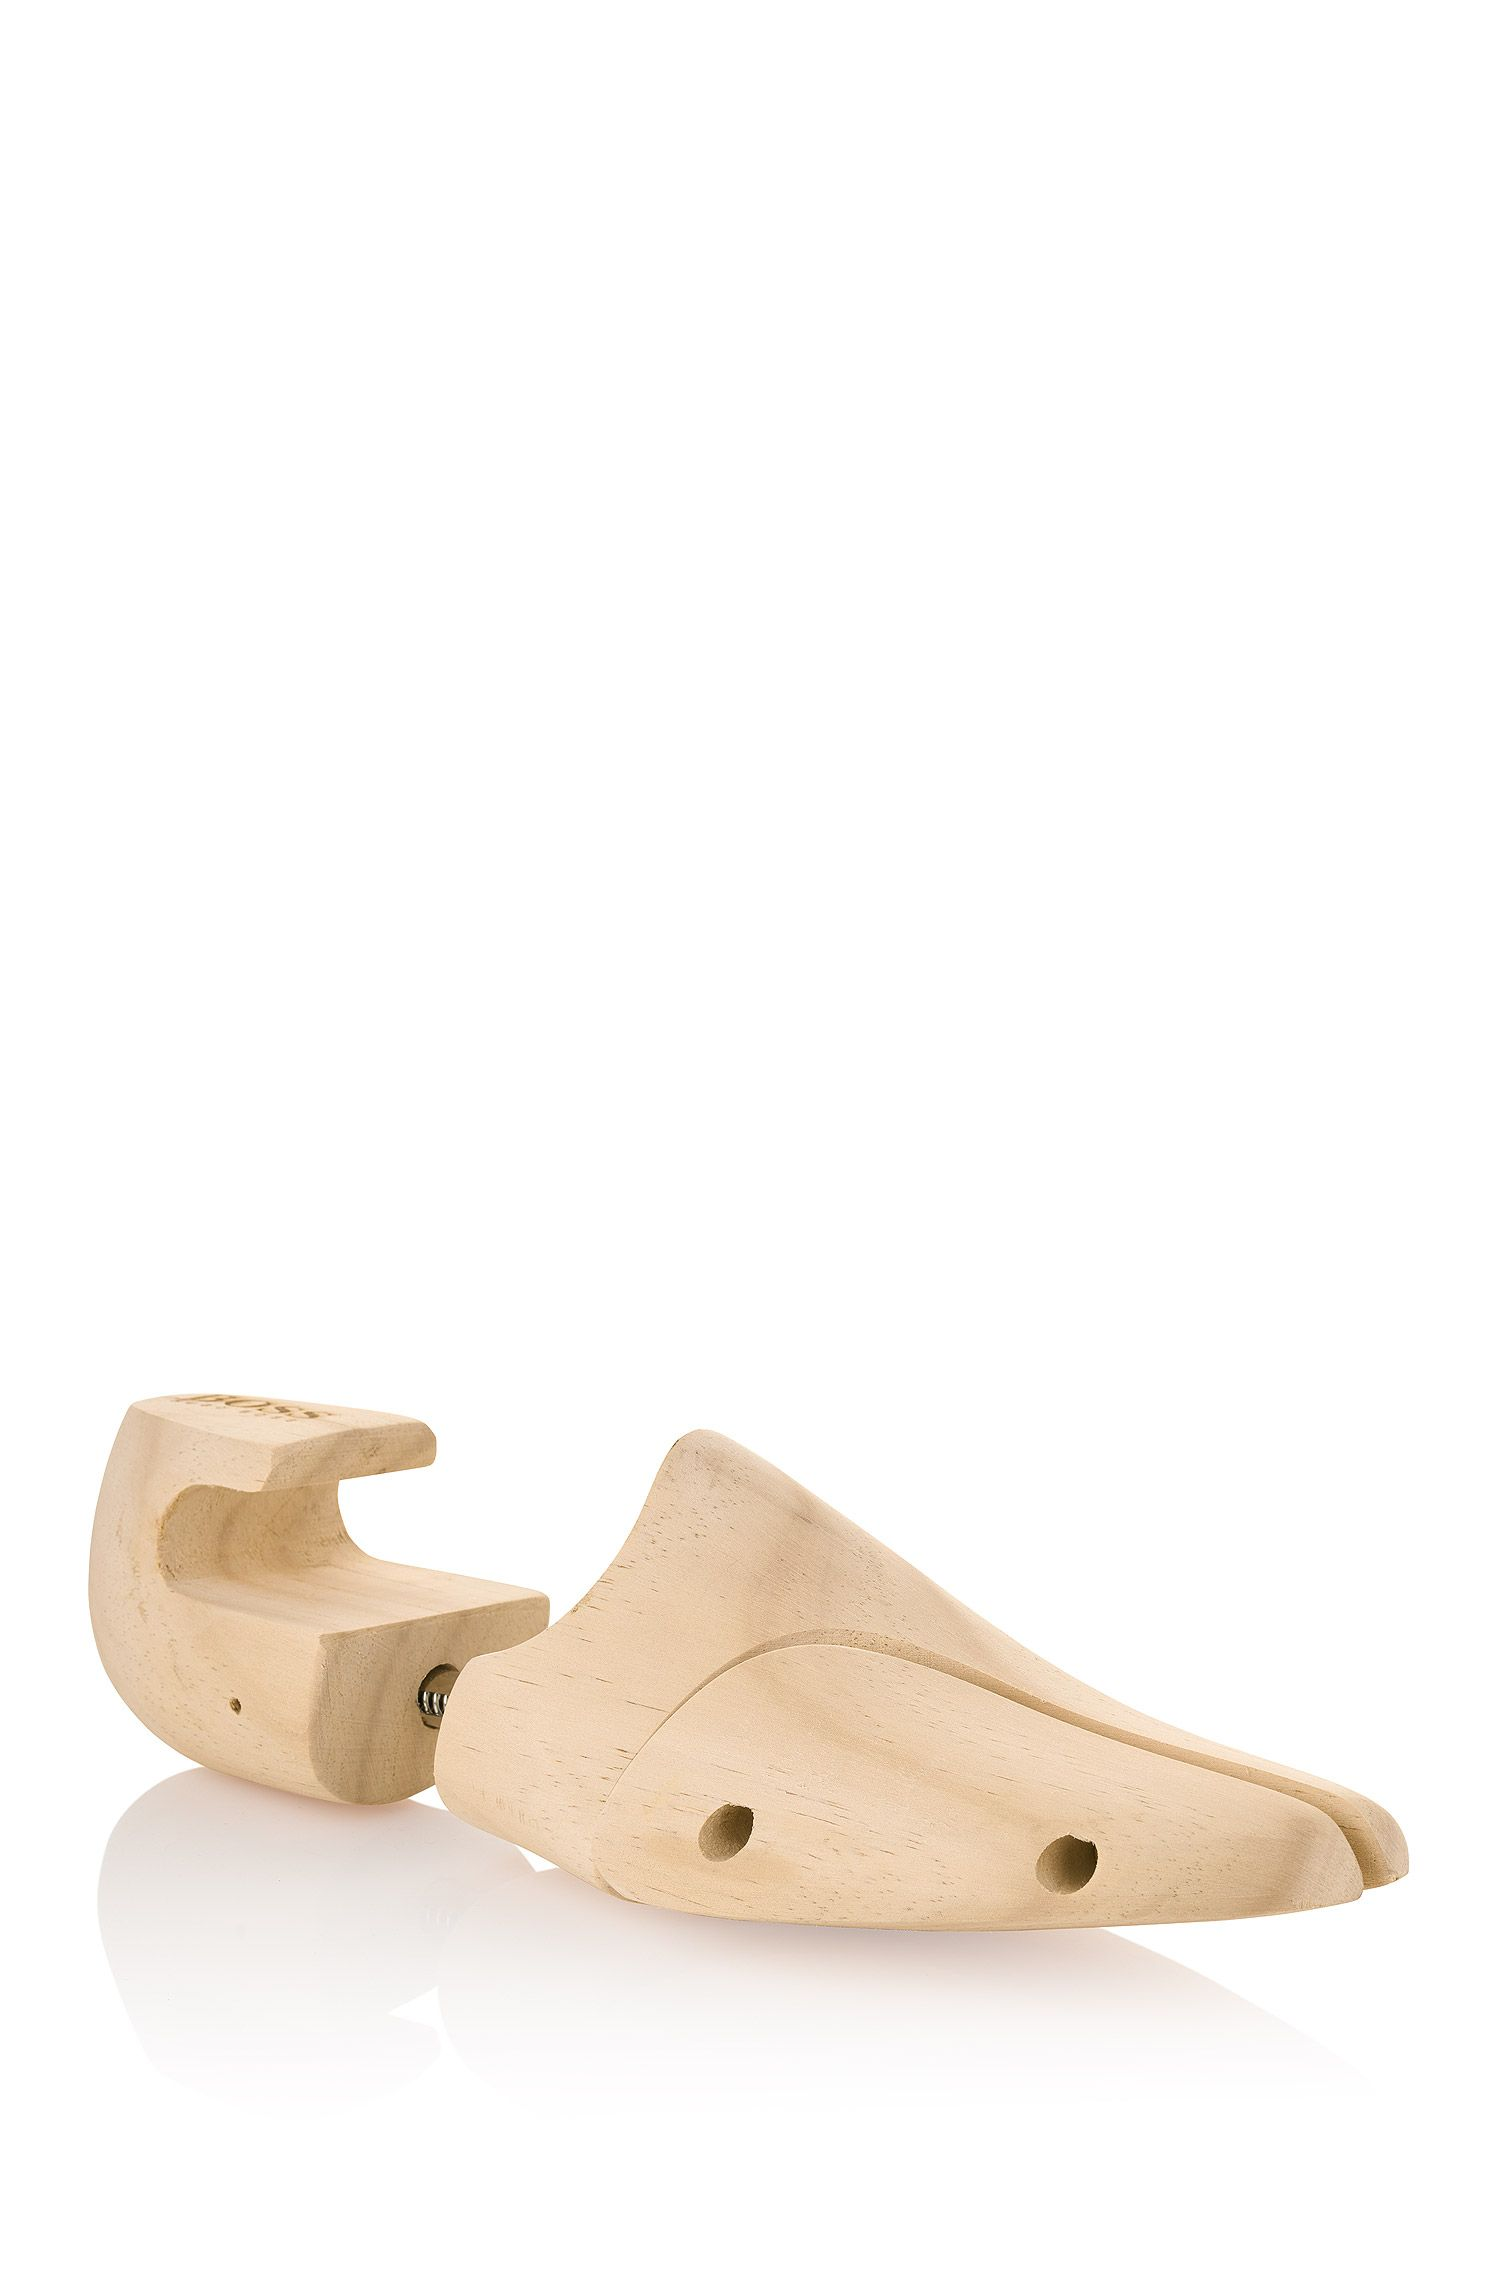 Embauchoirs « SHOETREE » en bois de pin